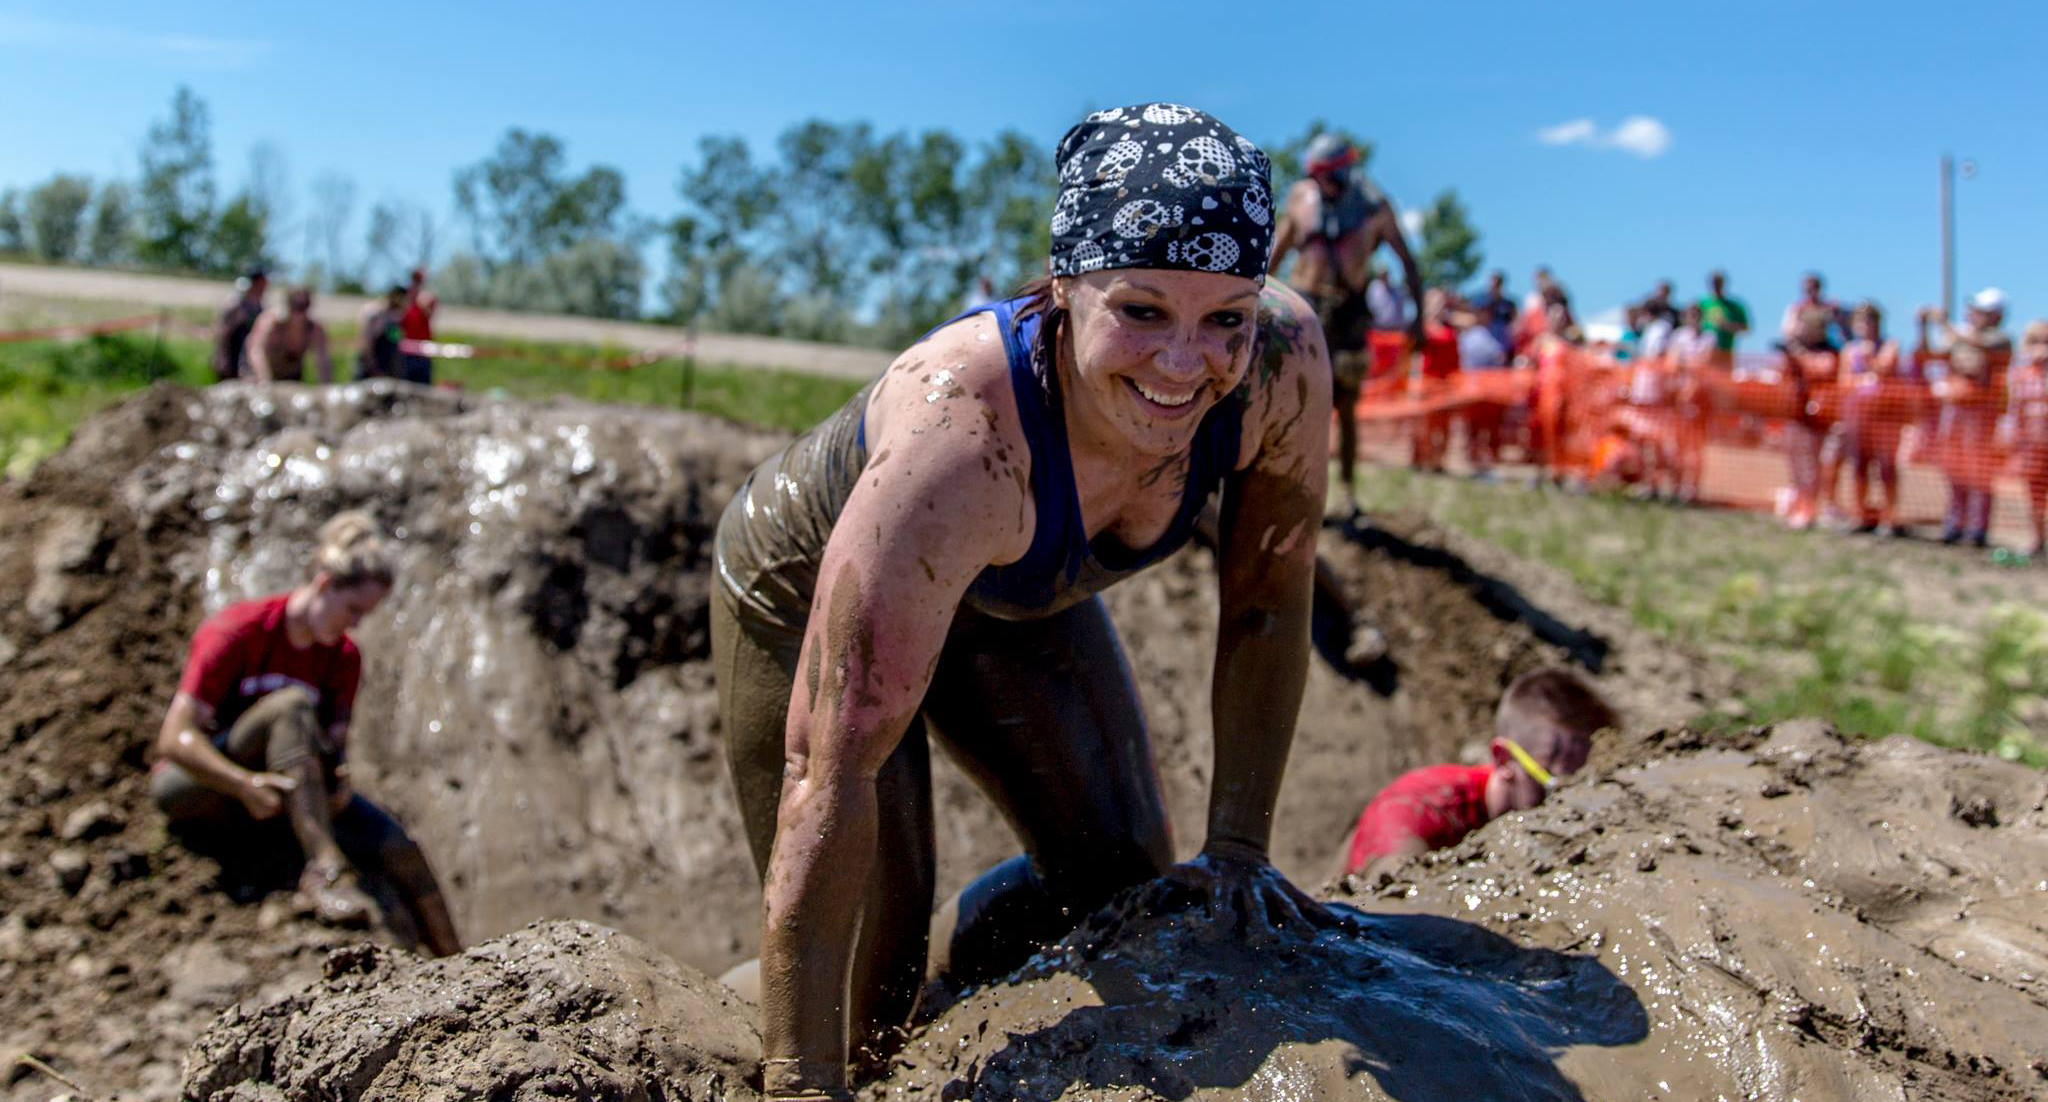 We are the Largest and Longest Running Mud Run in North Dakota Join Us!